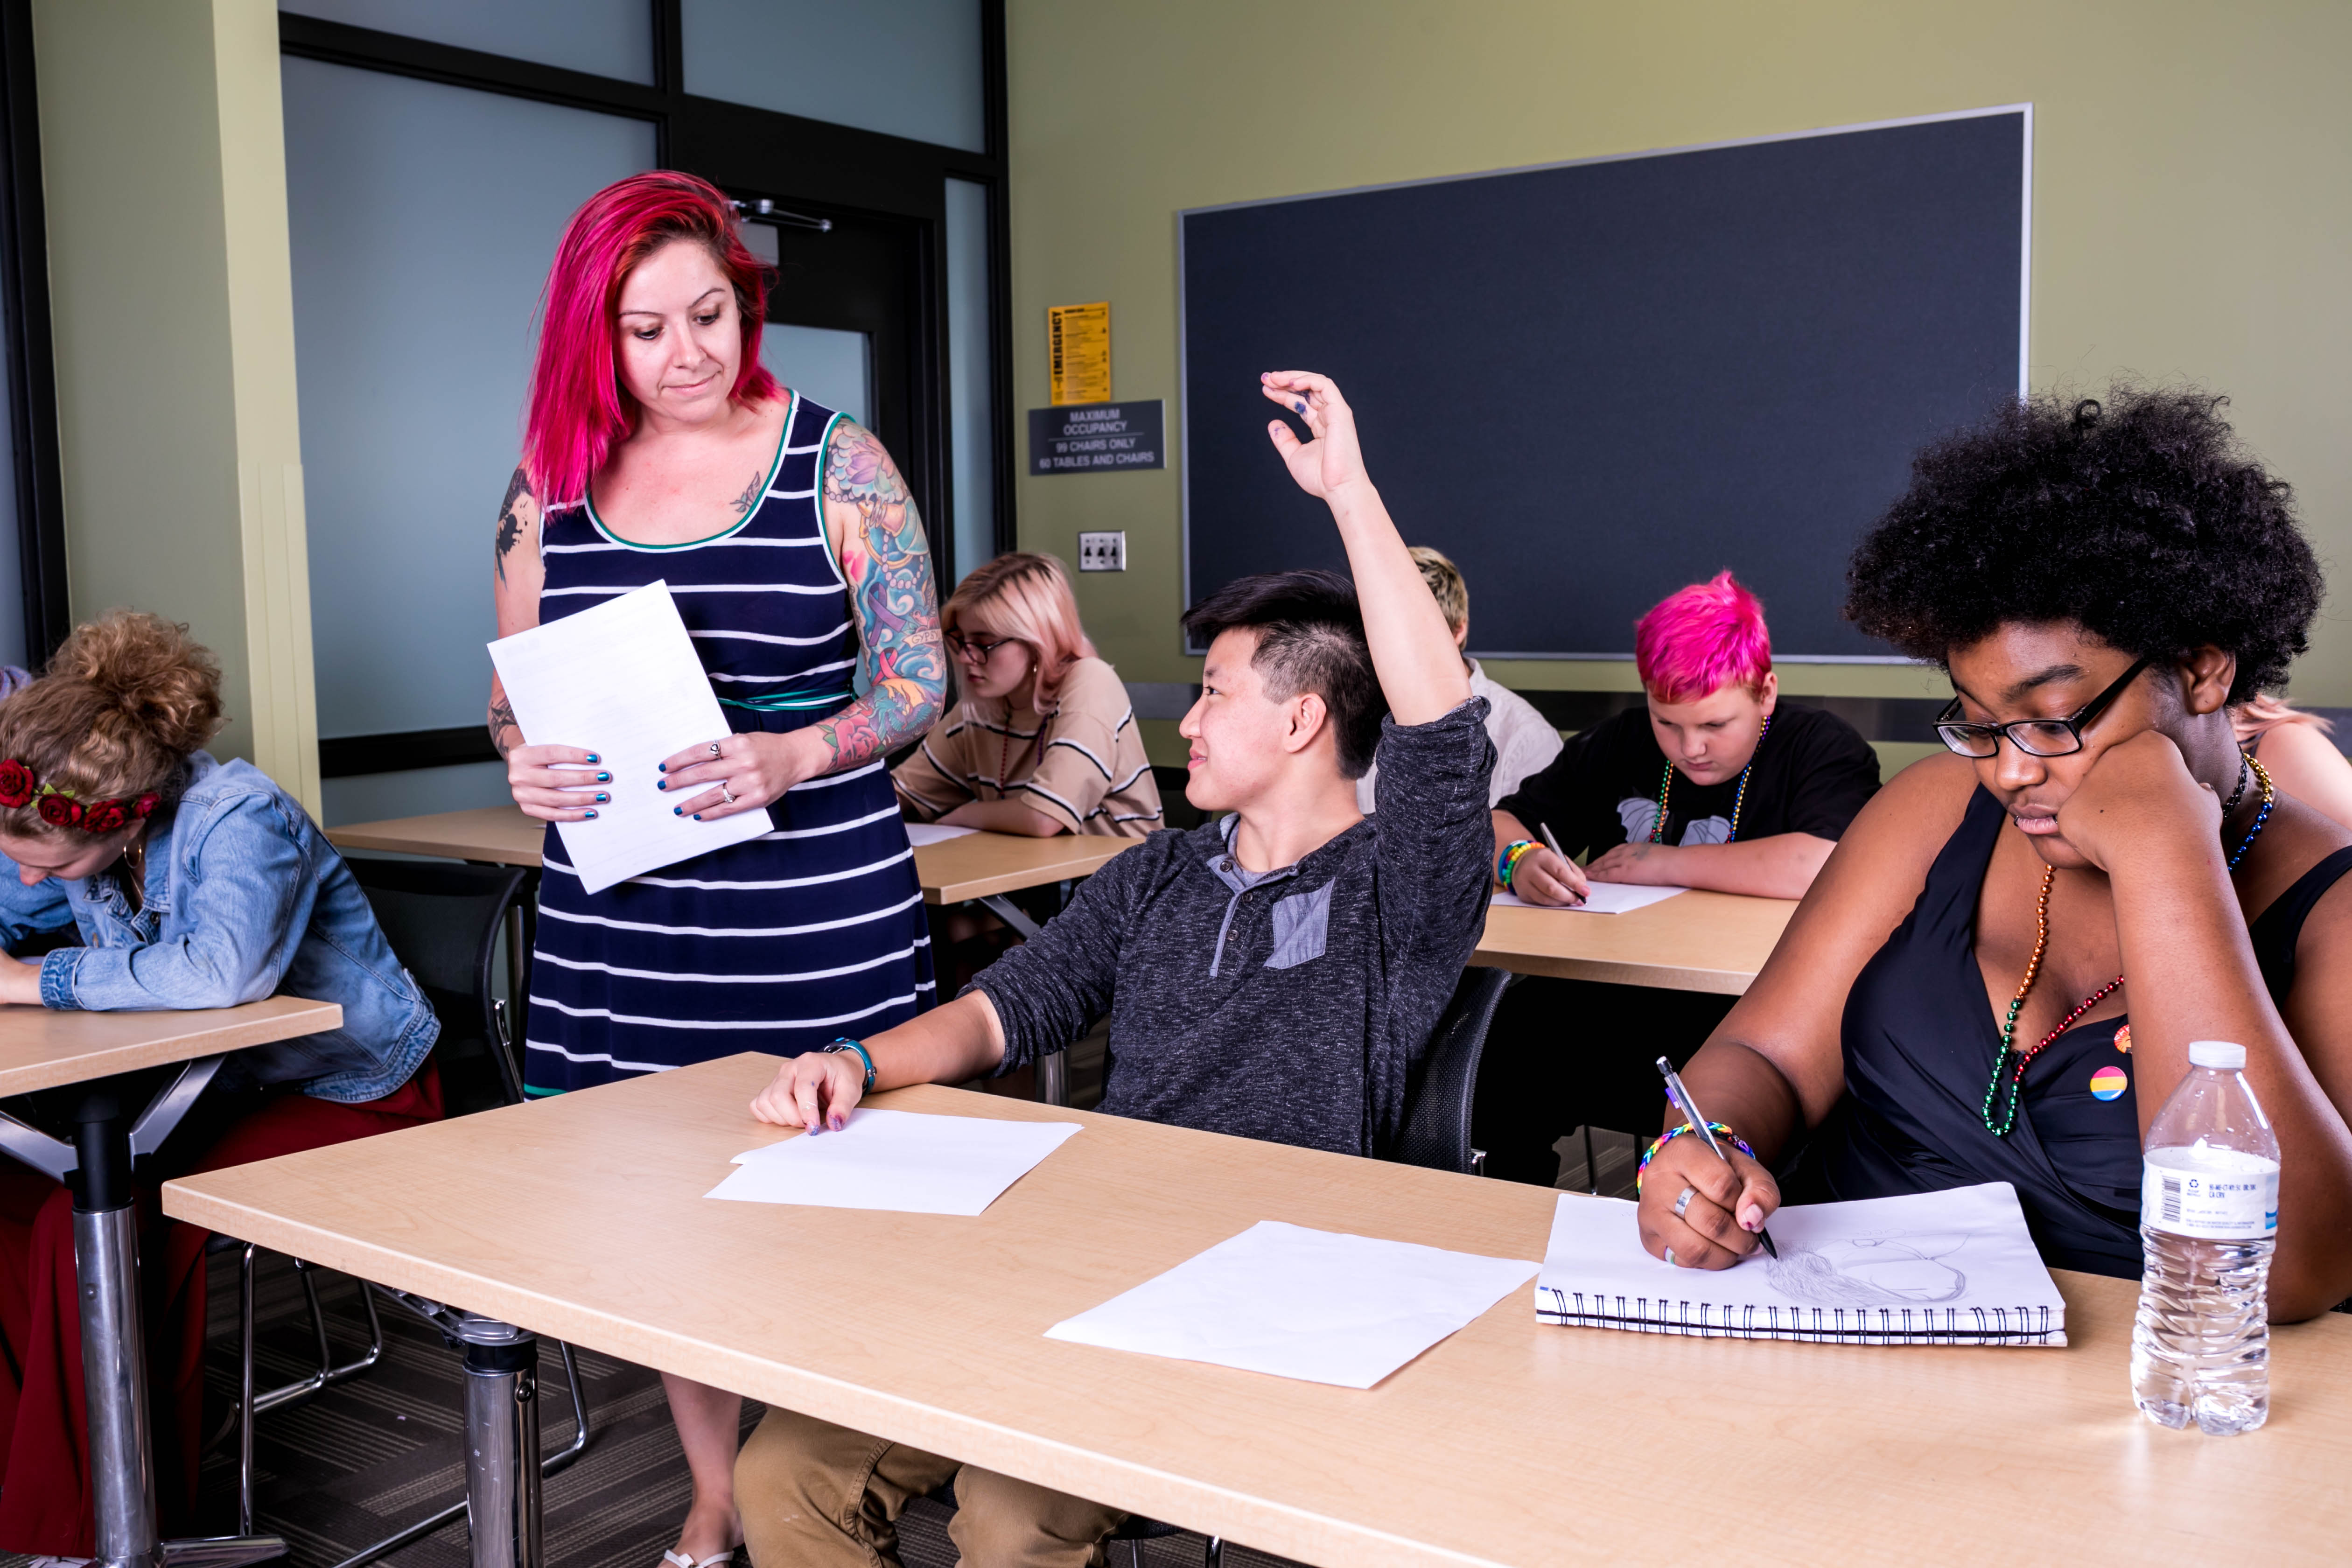 Four classroom tables of students write in their notebooks. A pink-haired educator holding papers approaches a student with their hand raised.